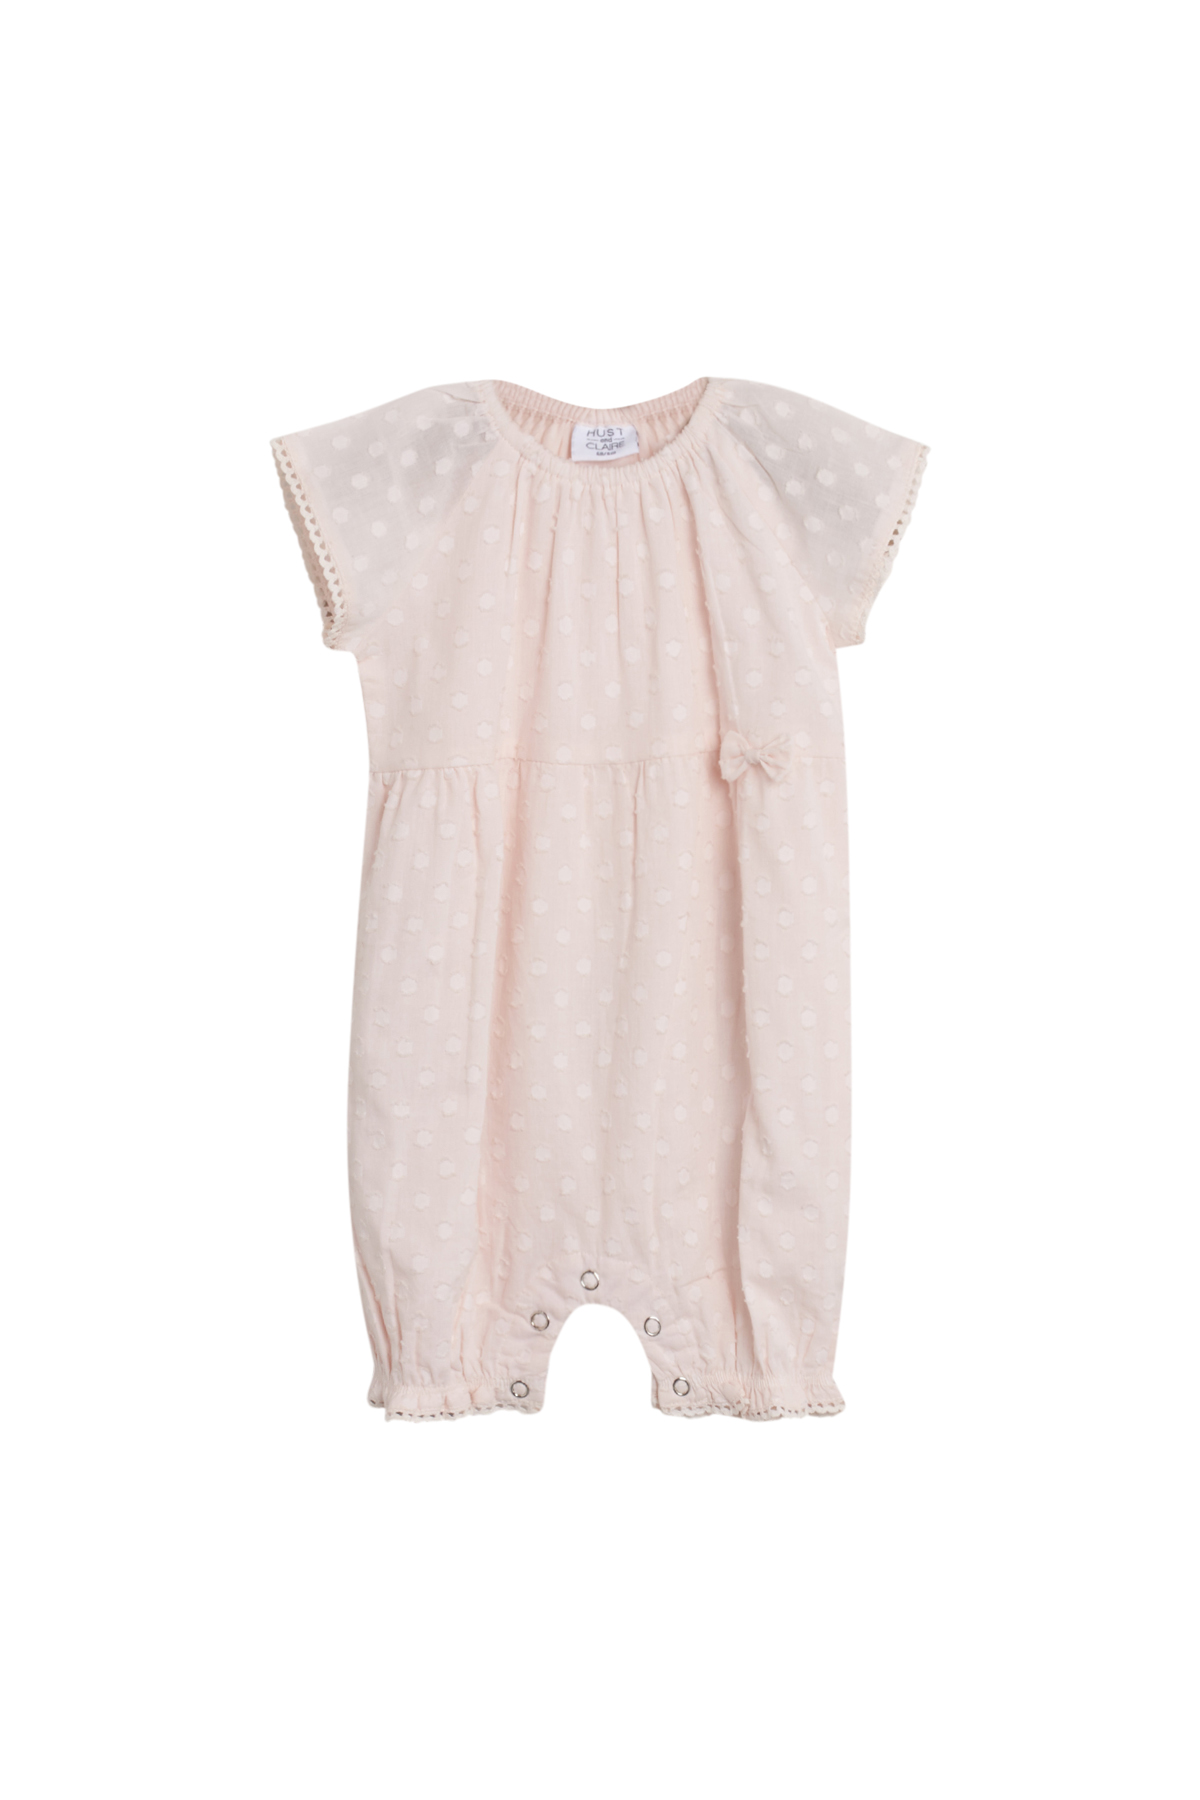 Hust and Claire Magna romper, Skin chalk, 86